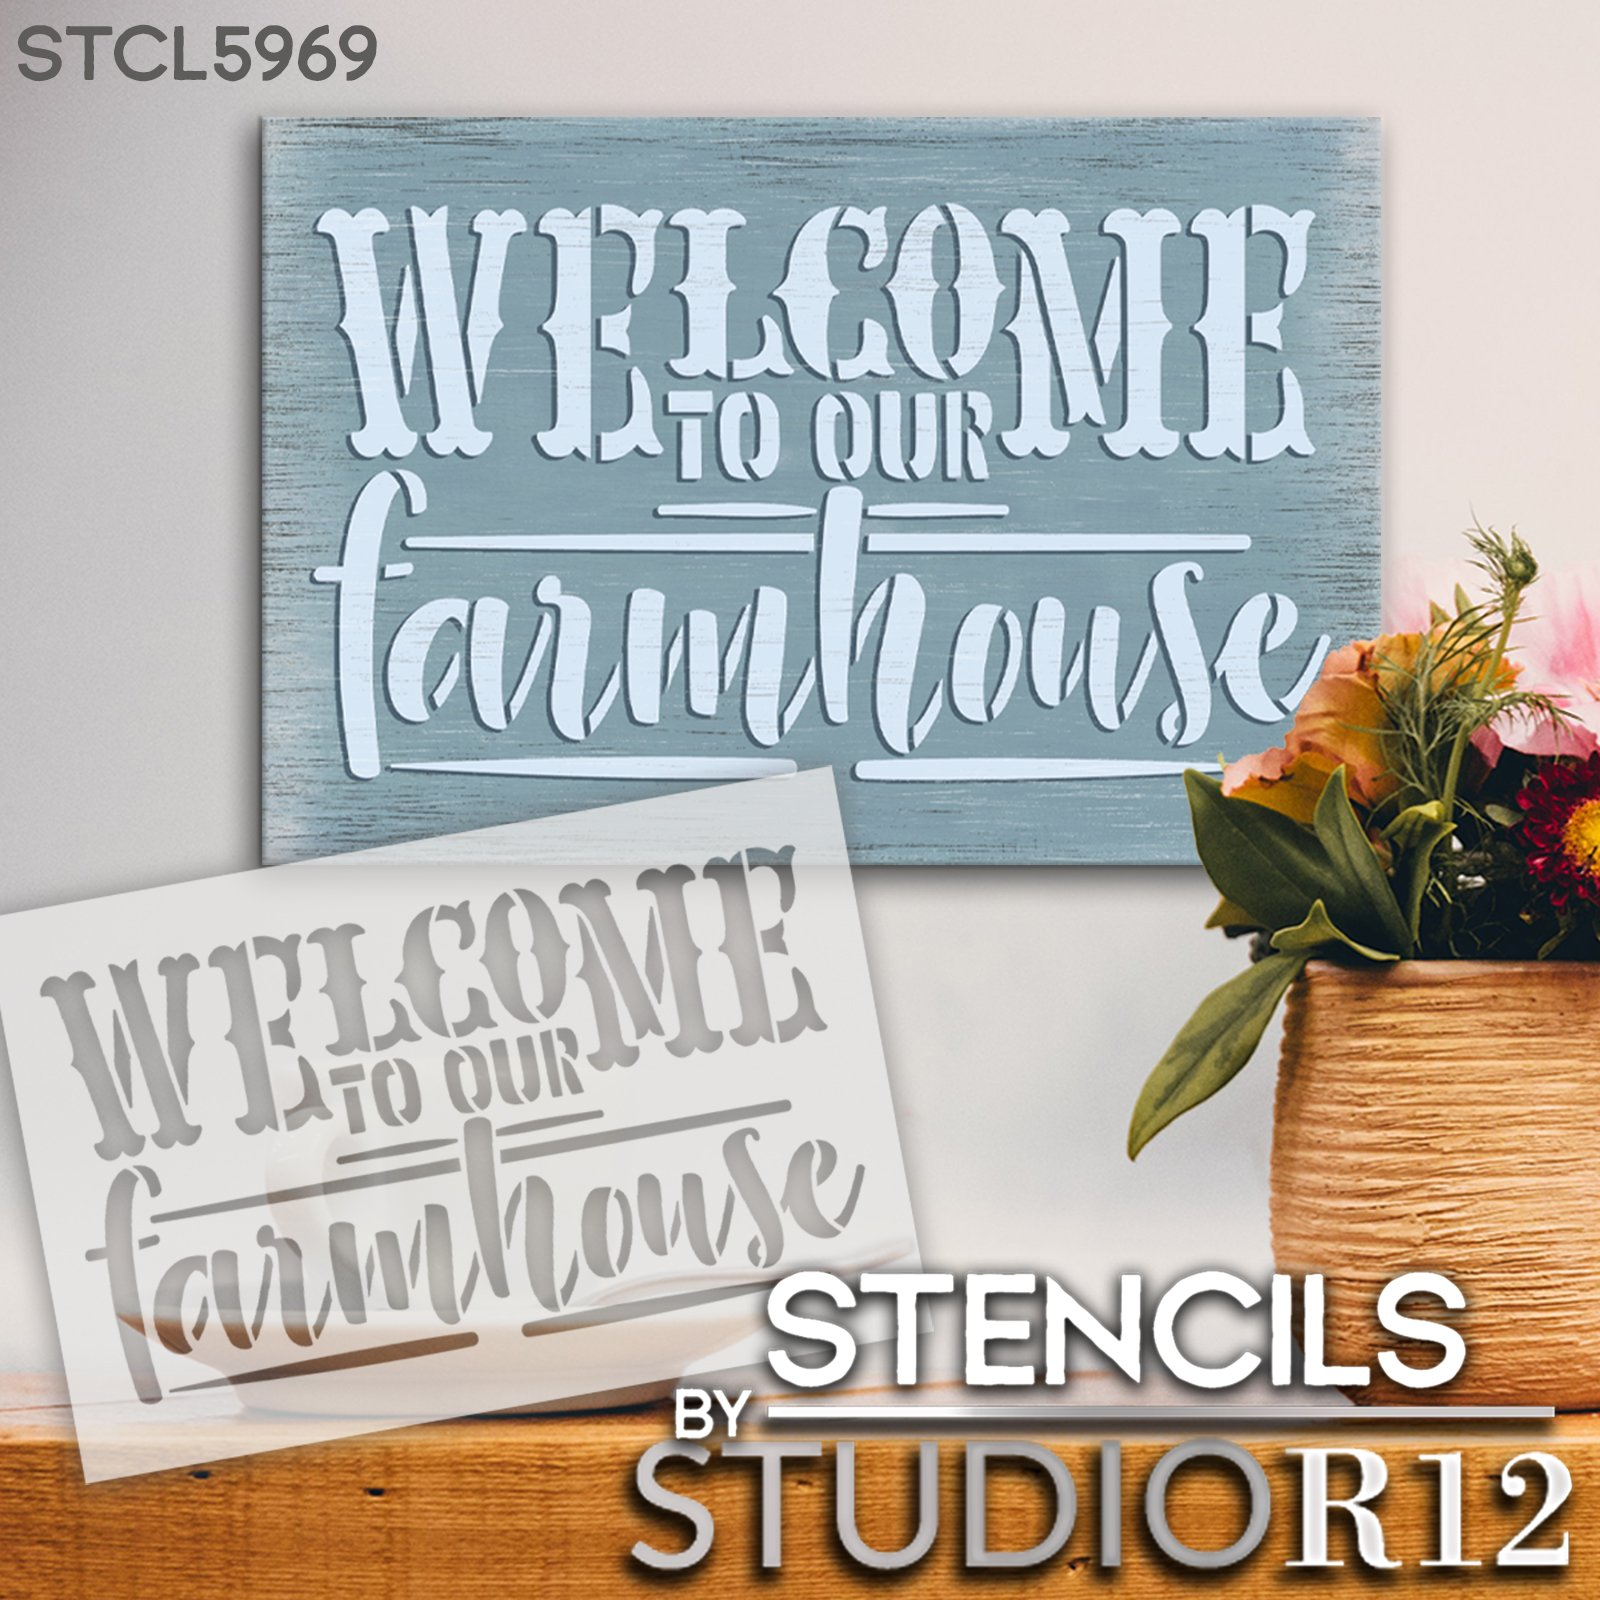 Welcome to Our Farmhouse Stencil by StudioR12   Craft Rustic DIY Home Decor   Paint Wood Sign   Reusable Mylar Template   Select Size